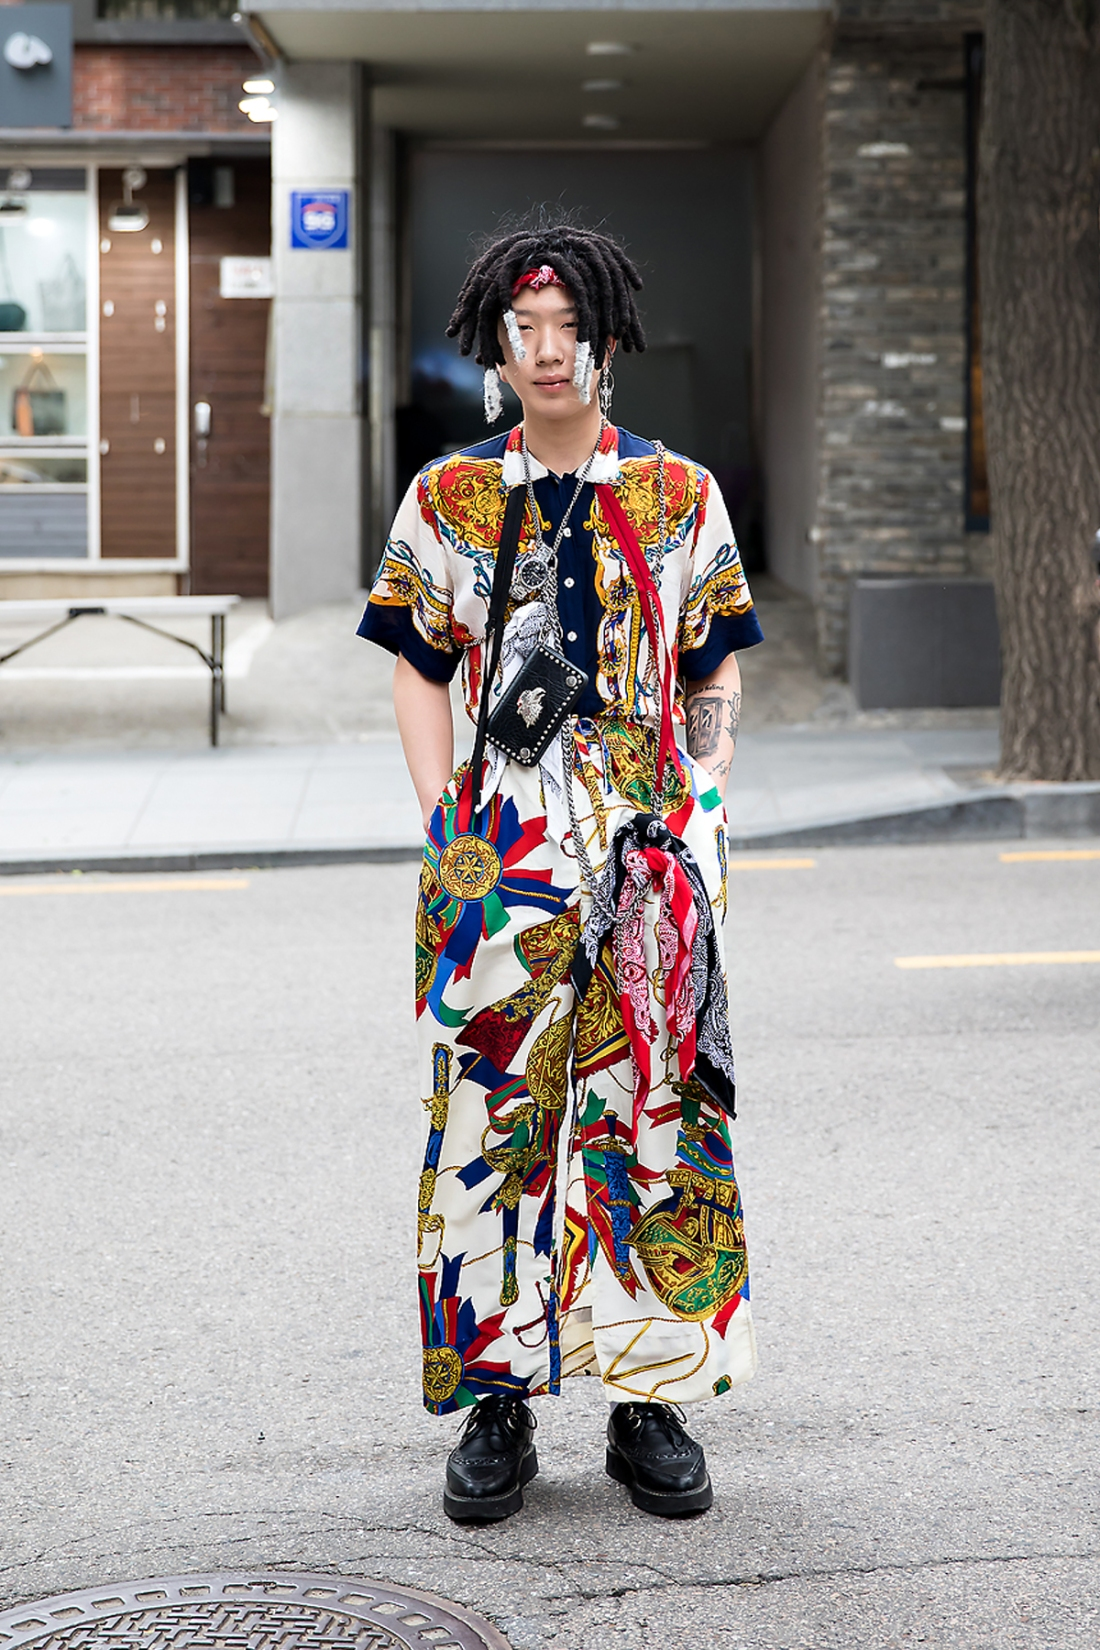 Jung Sayoon, Street Fashion 2017 in Seou..jpg